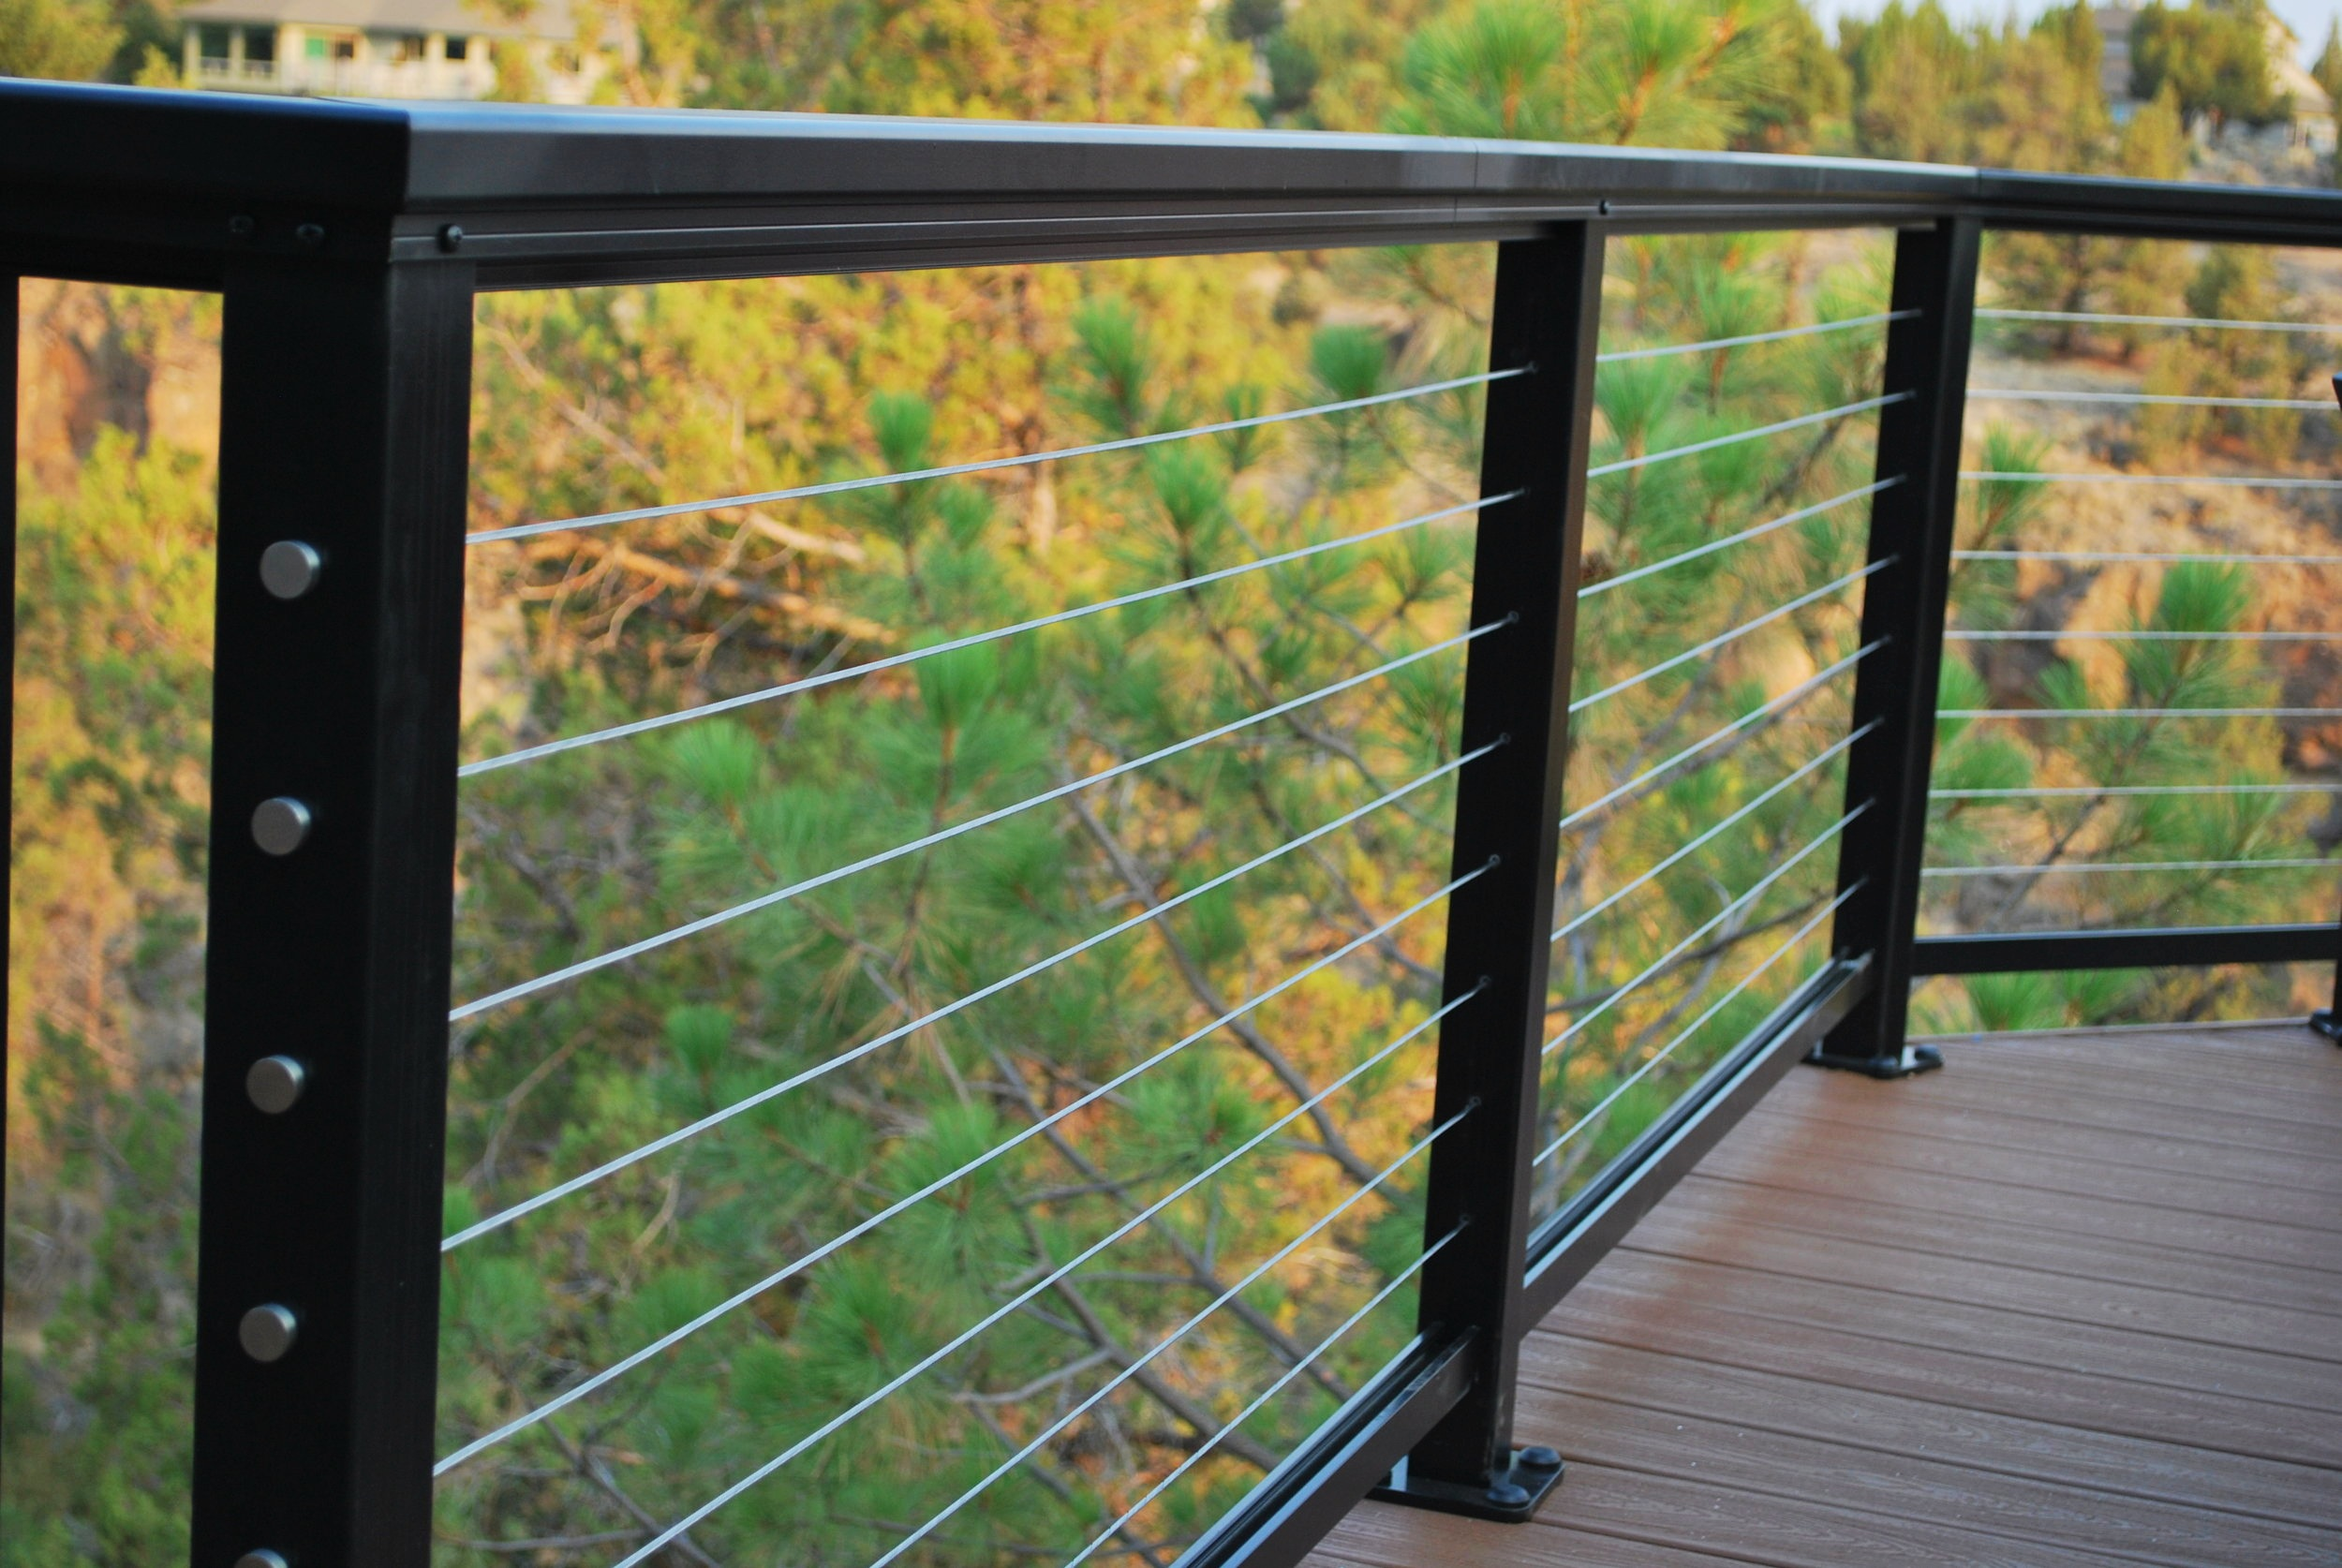 Railing - If your project will include railings there are a plethora of options available. Metal, aluminum and composite railing frames are the industry standard and will offer one or more of the (3) most common infill styles: Picket, cable and/or glass. The color options available, railing top-cap profile options, post thickness and pricing will vary between styles and manufacturers.